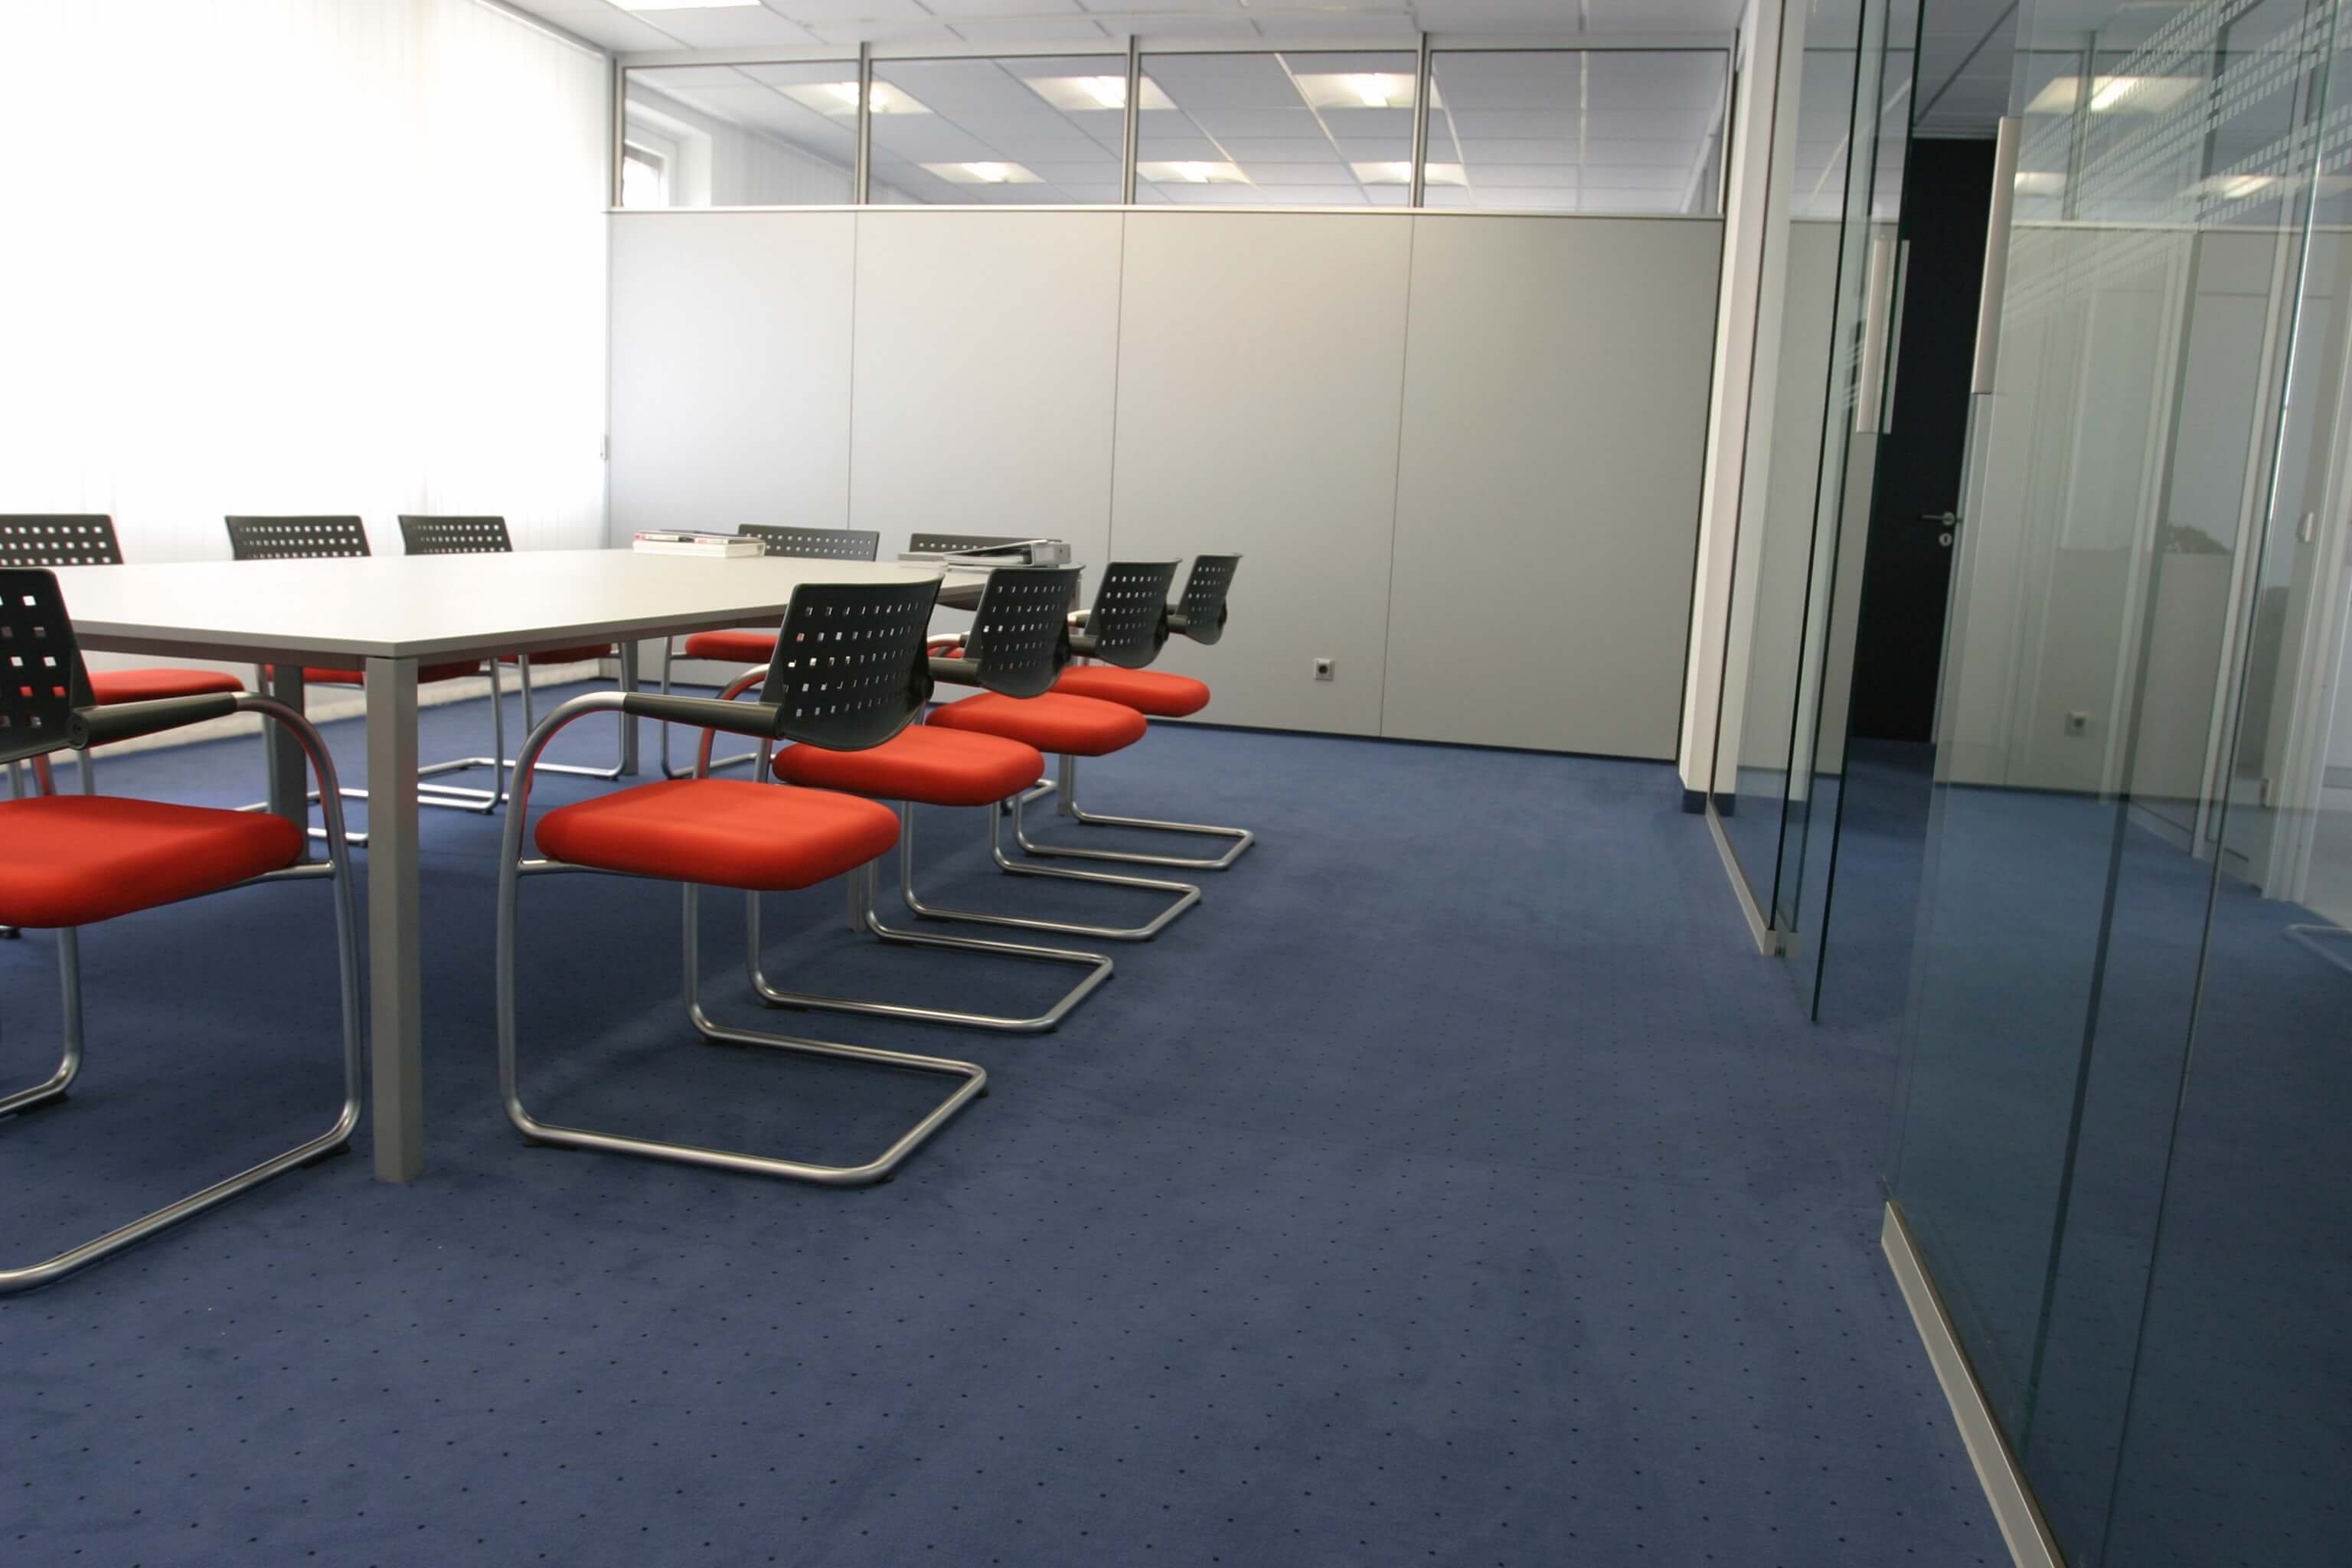 3 Reasons to Get Your Business Cleaned by a Professional